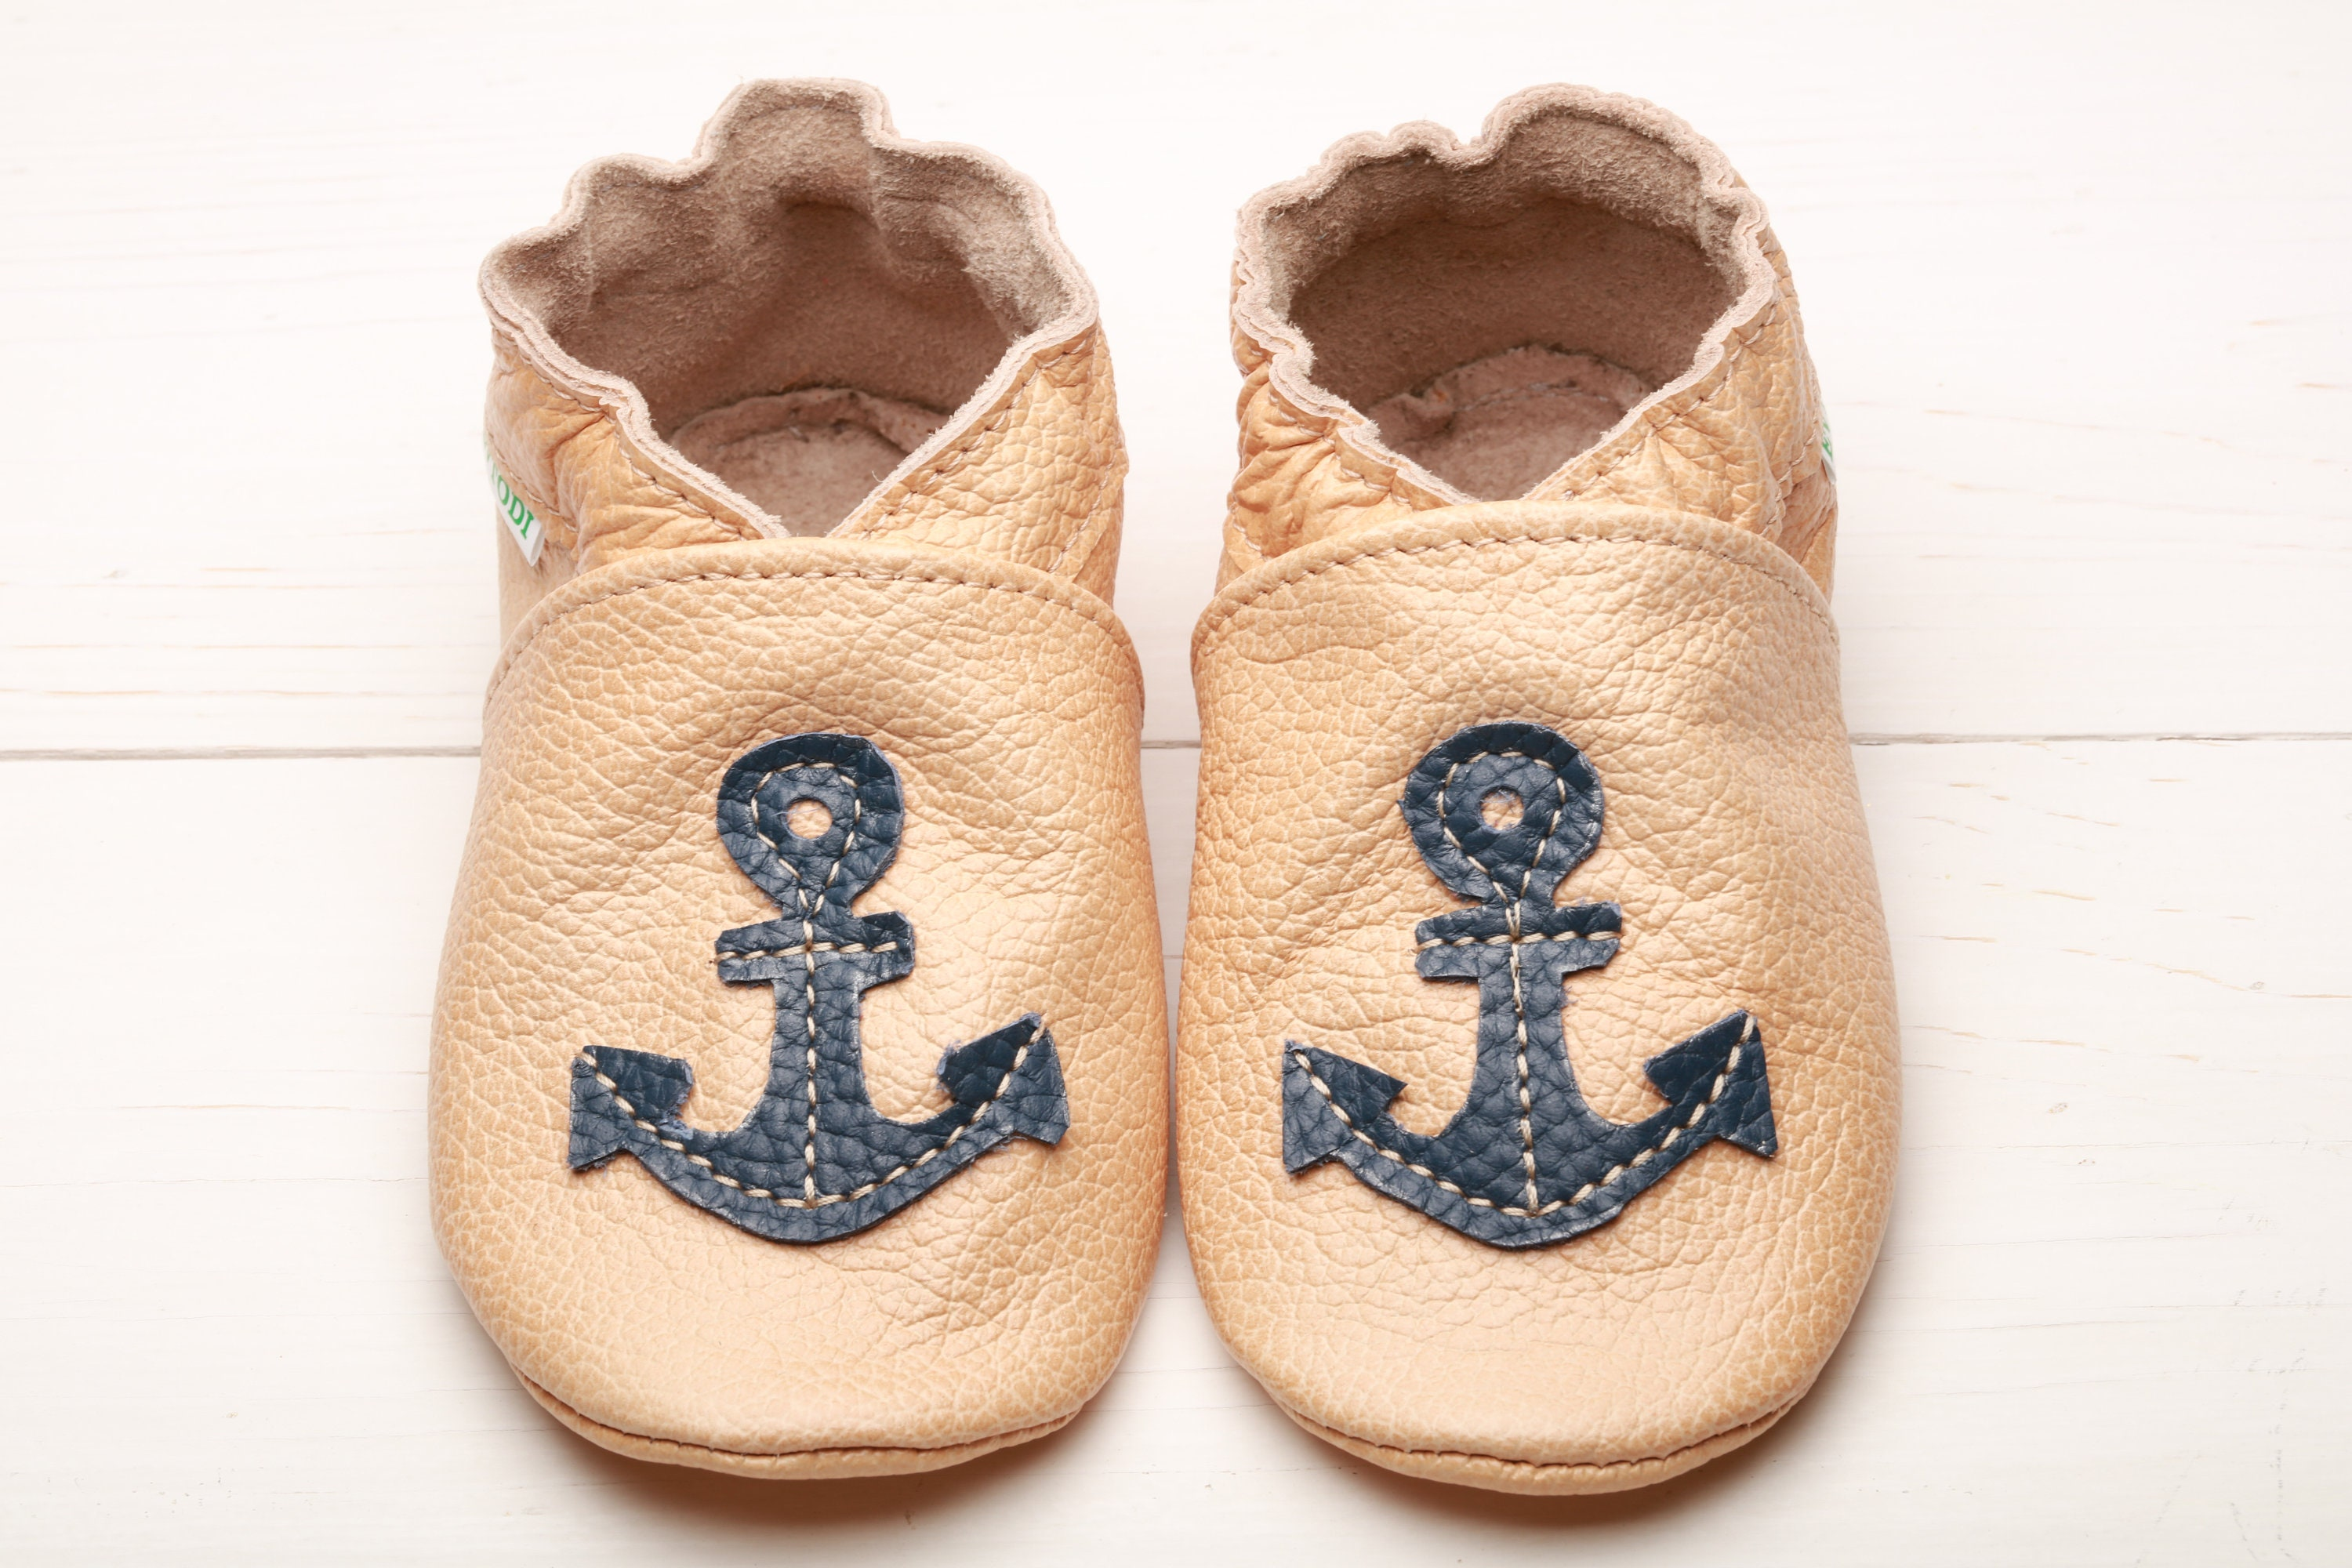 38d105e0a1332 Nautical Baby Shoes, Leather Baby Shoes, Soft Sole Kids Shoes, Boys', Baby  Moccasins, Girls', Infant Shoes, Baby Booties, Anchor Baby Shower